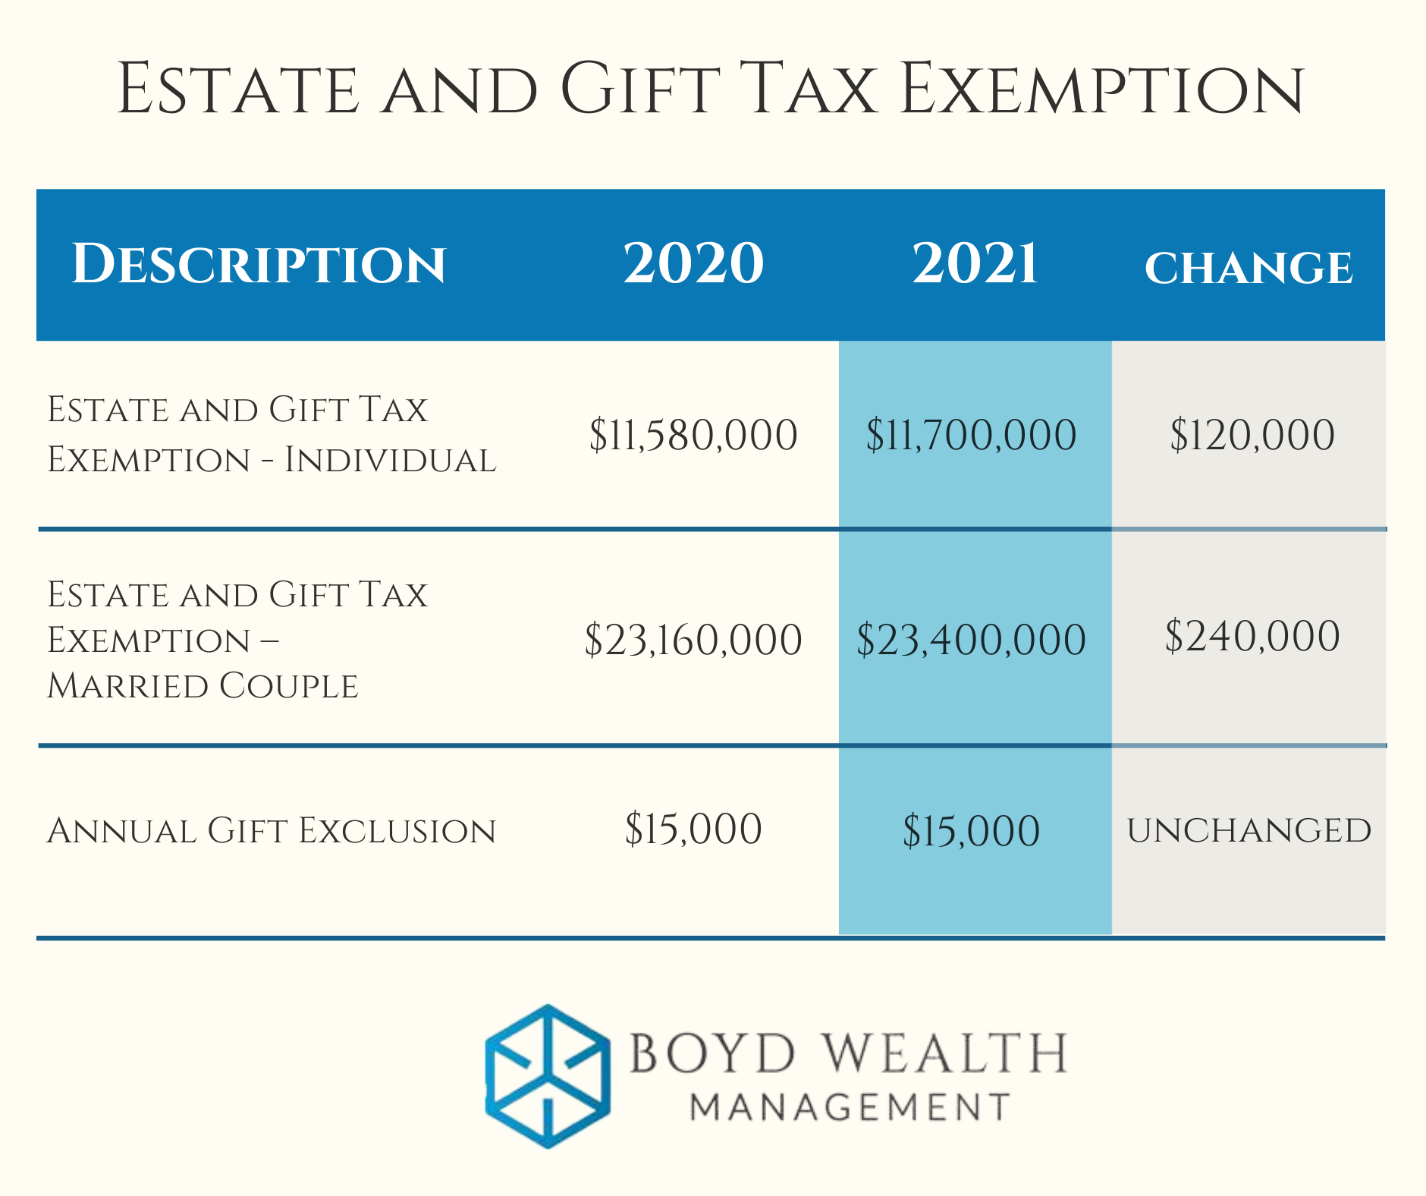 Estate and Gift Tax Exemption